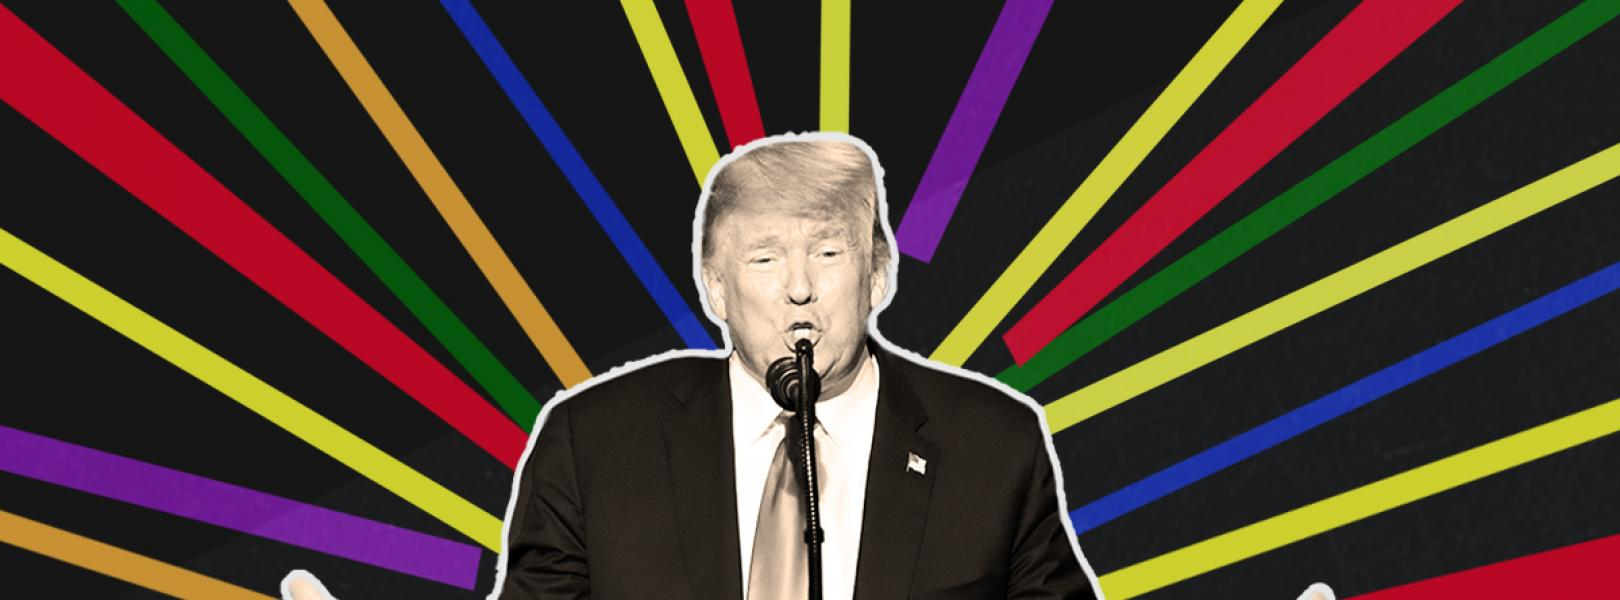 Trump with rainbow lines